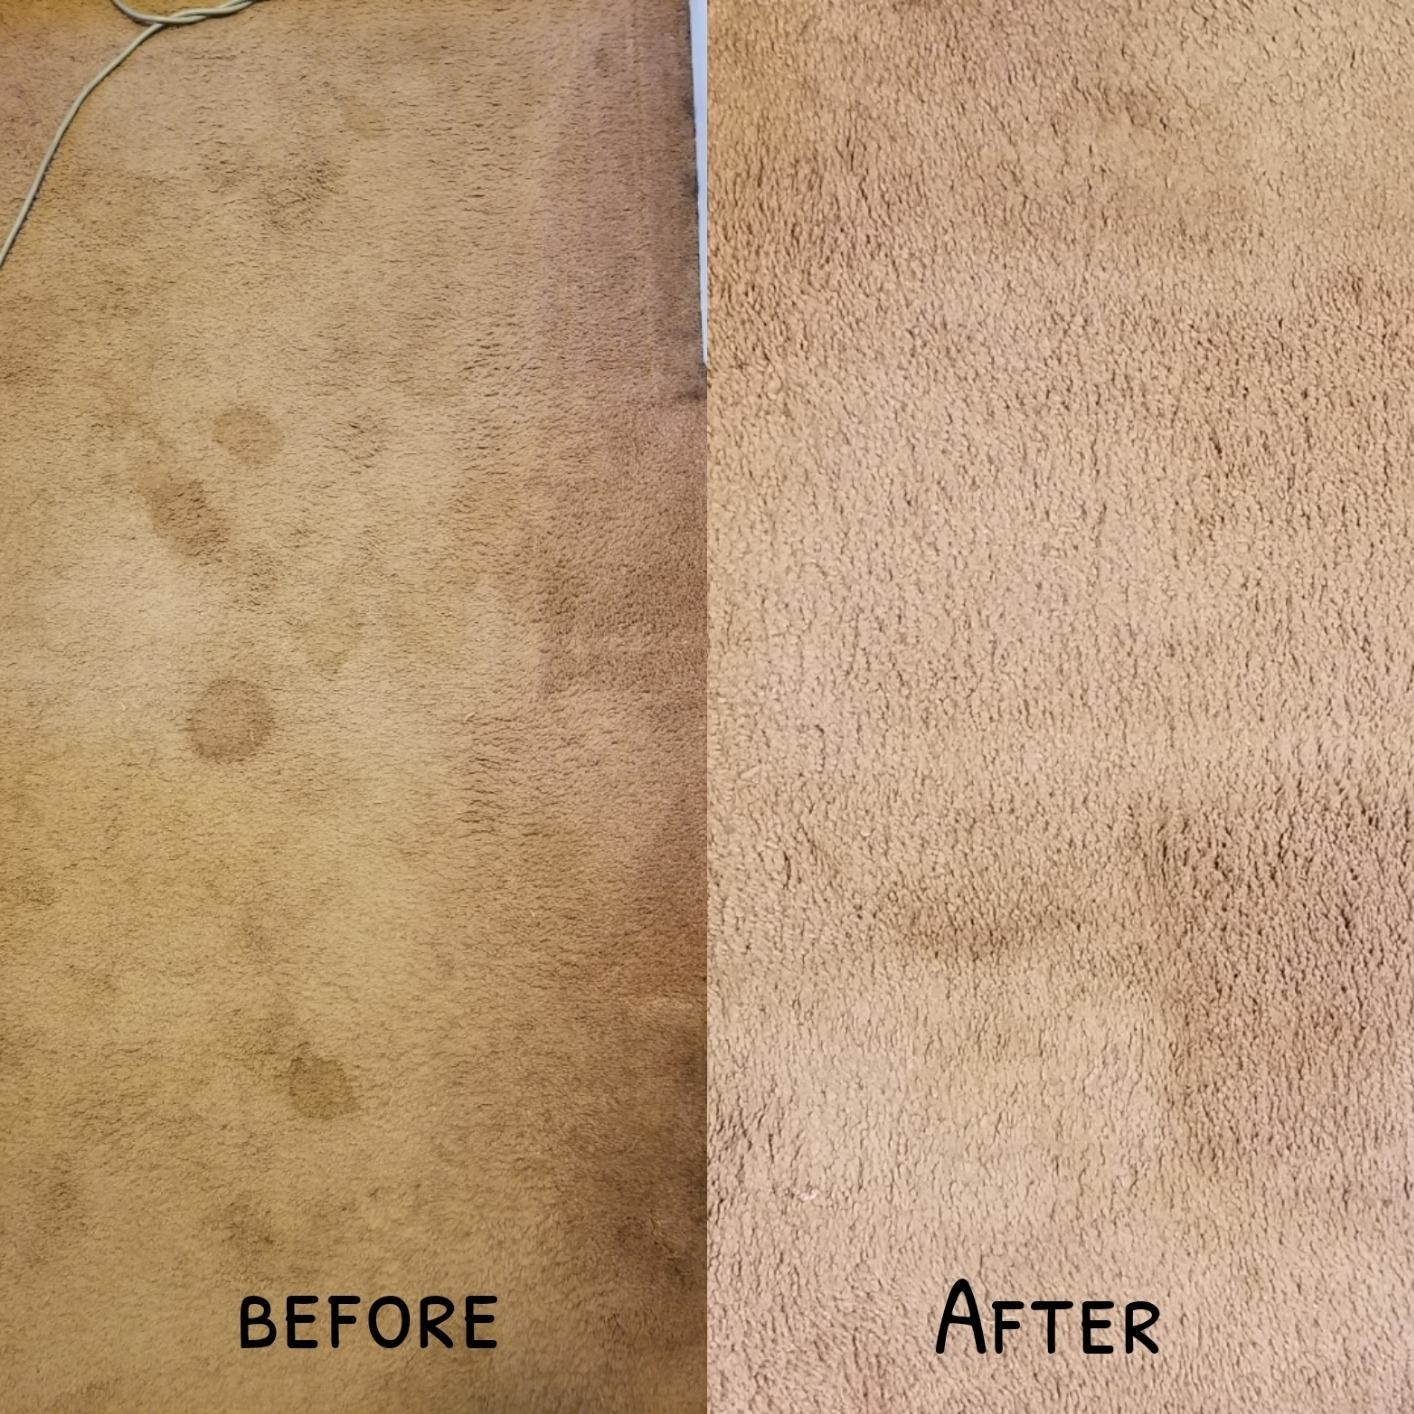 Before and after shot of stained toilet vs stain-free carpet